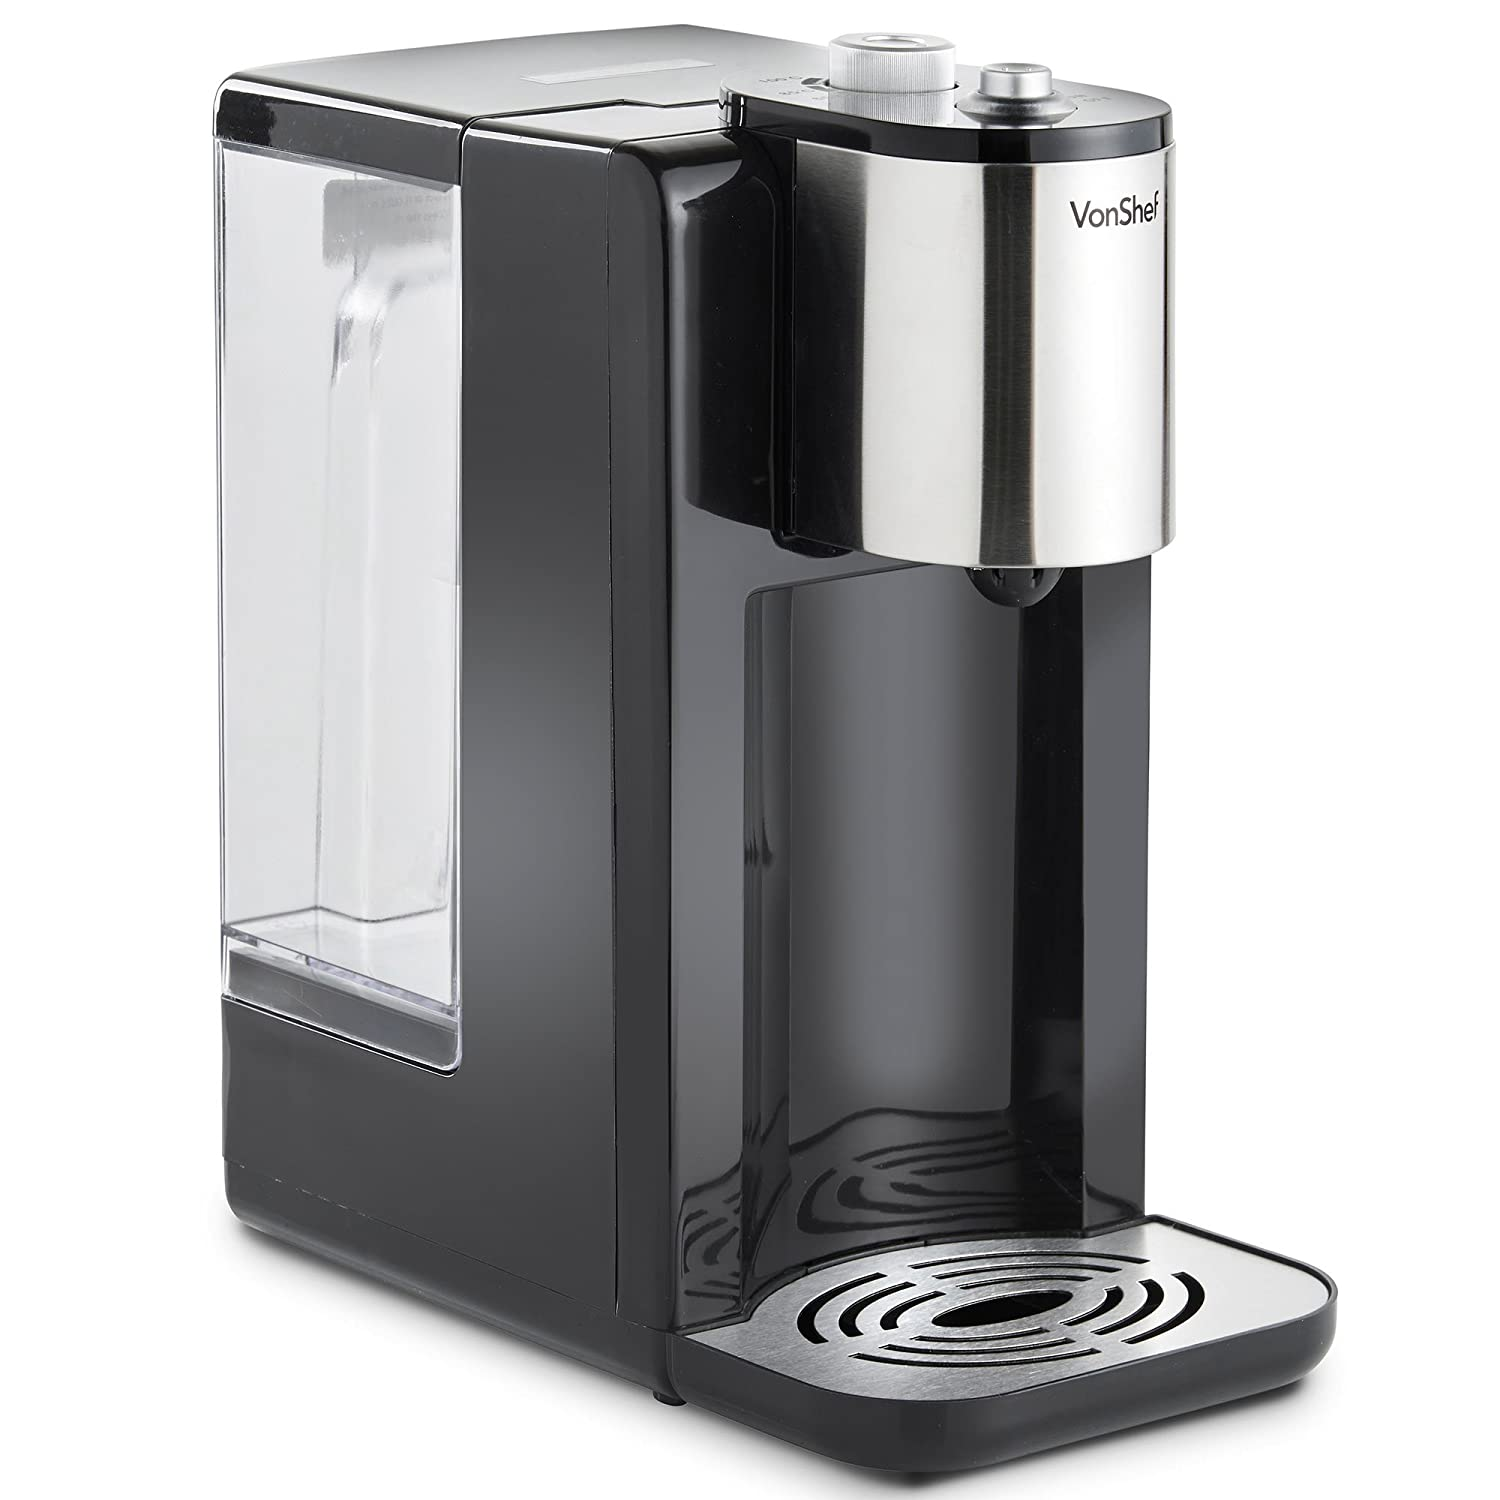 Image result for hot water dispenser